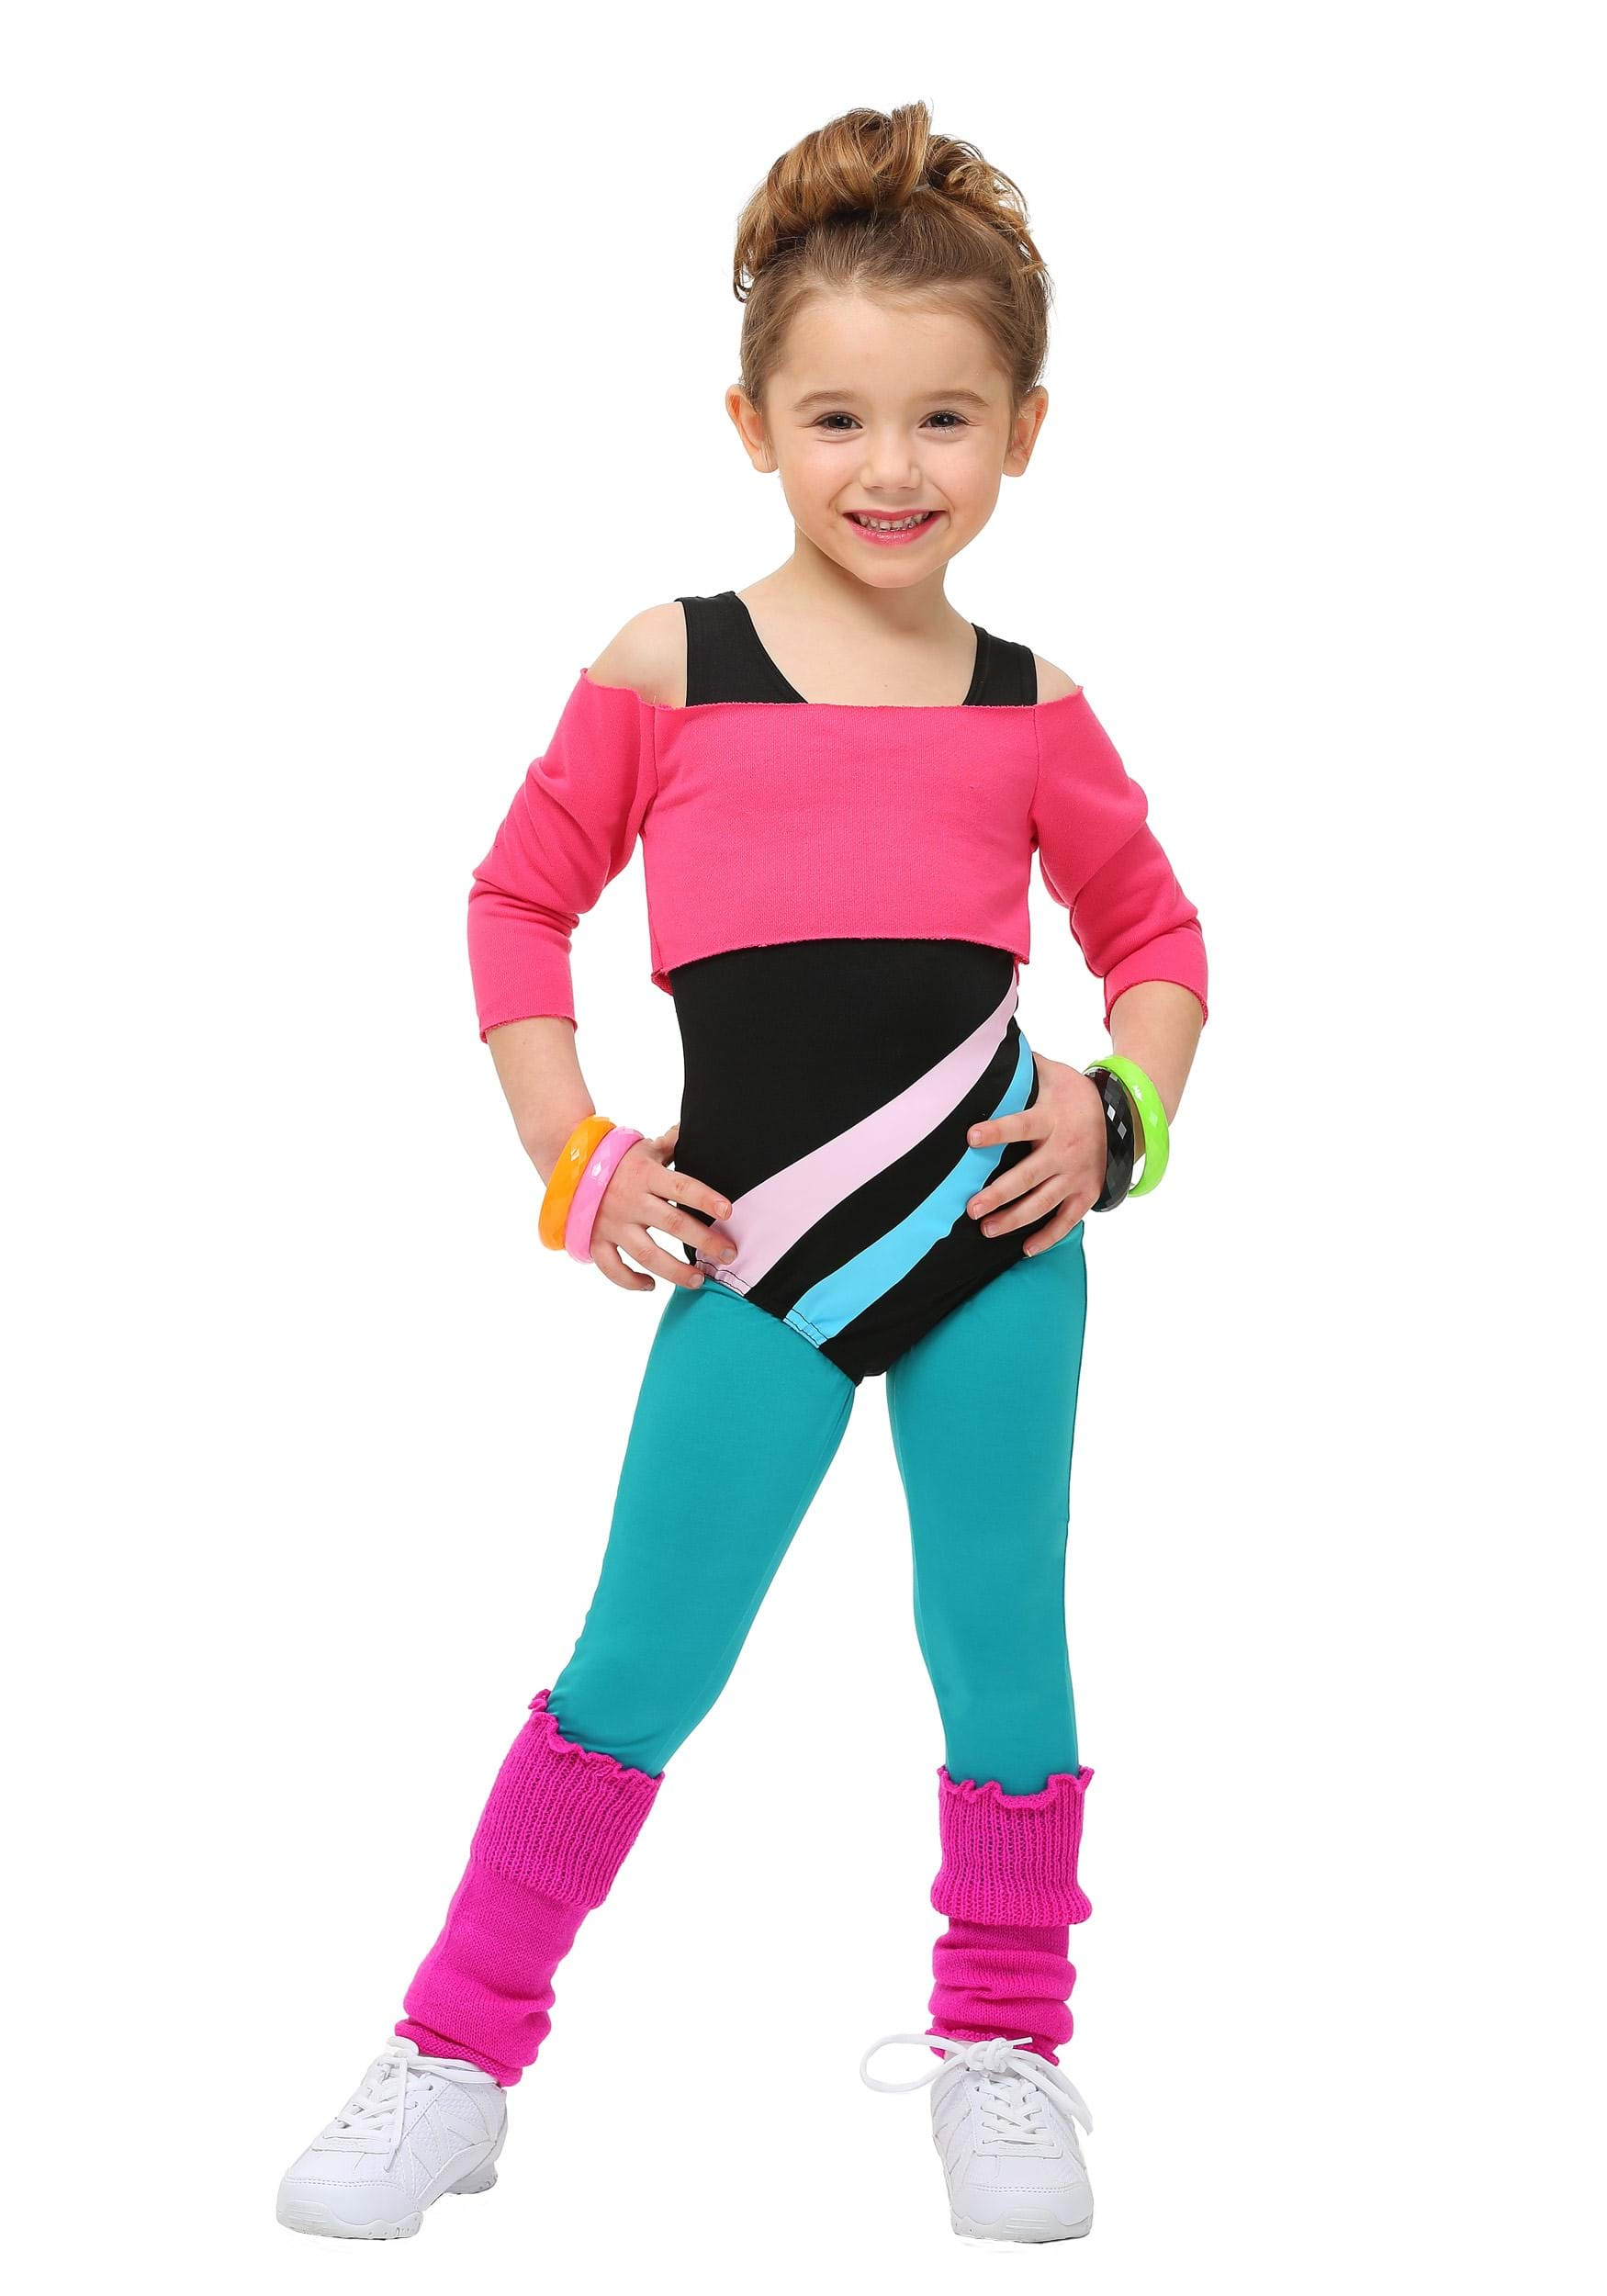 Toddler 80 39 s workout girl costume for Children s halloween costume ideas